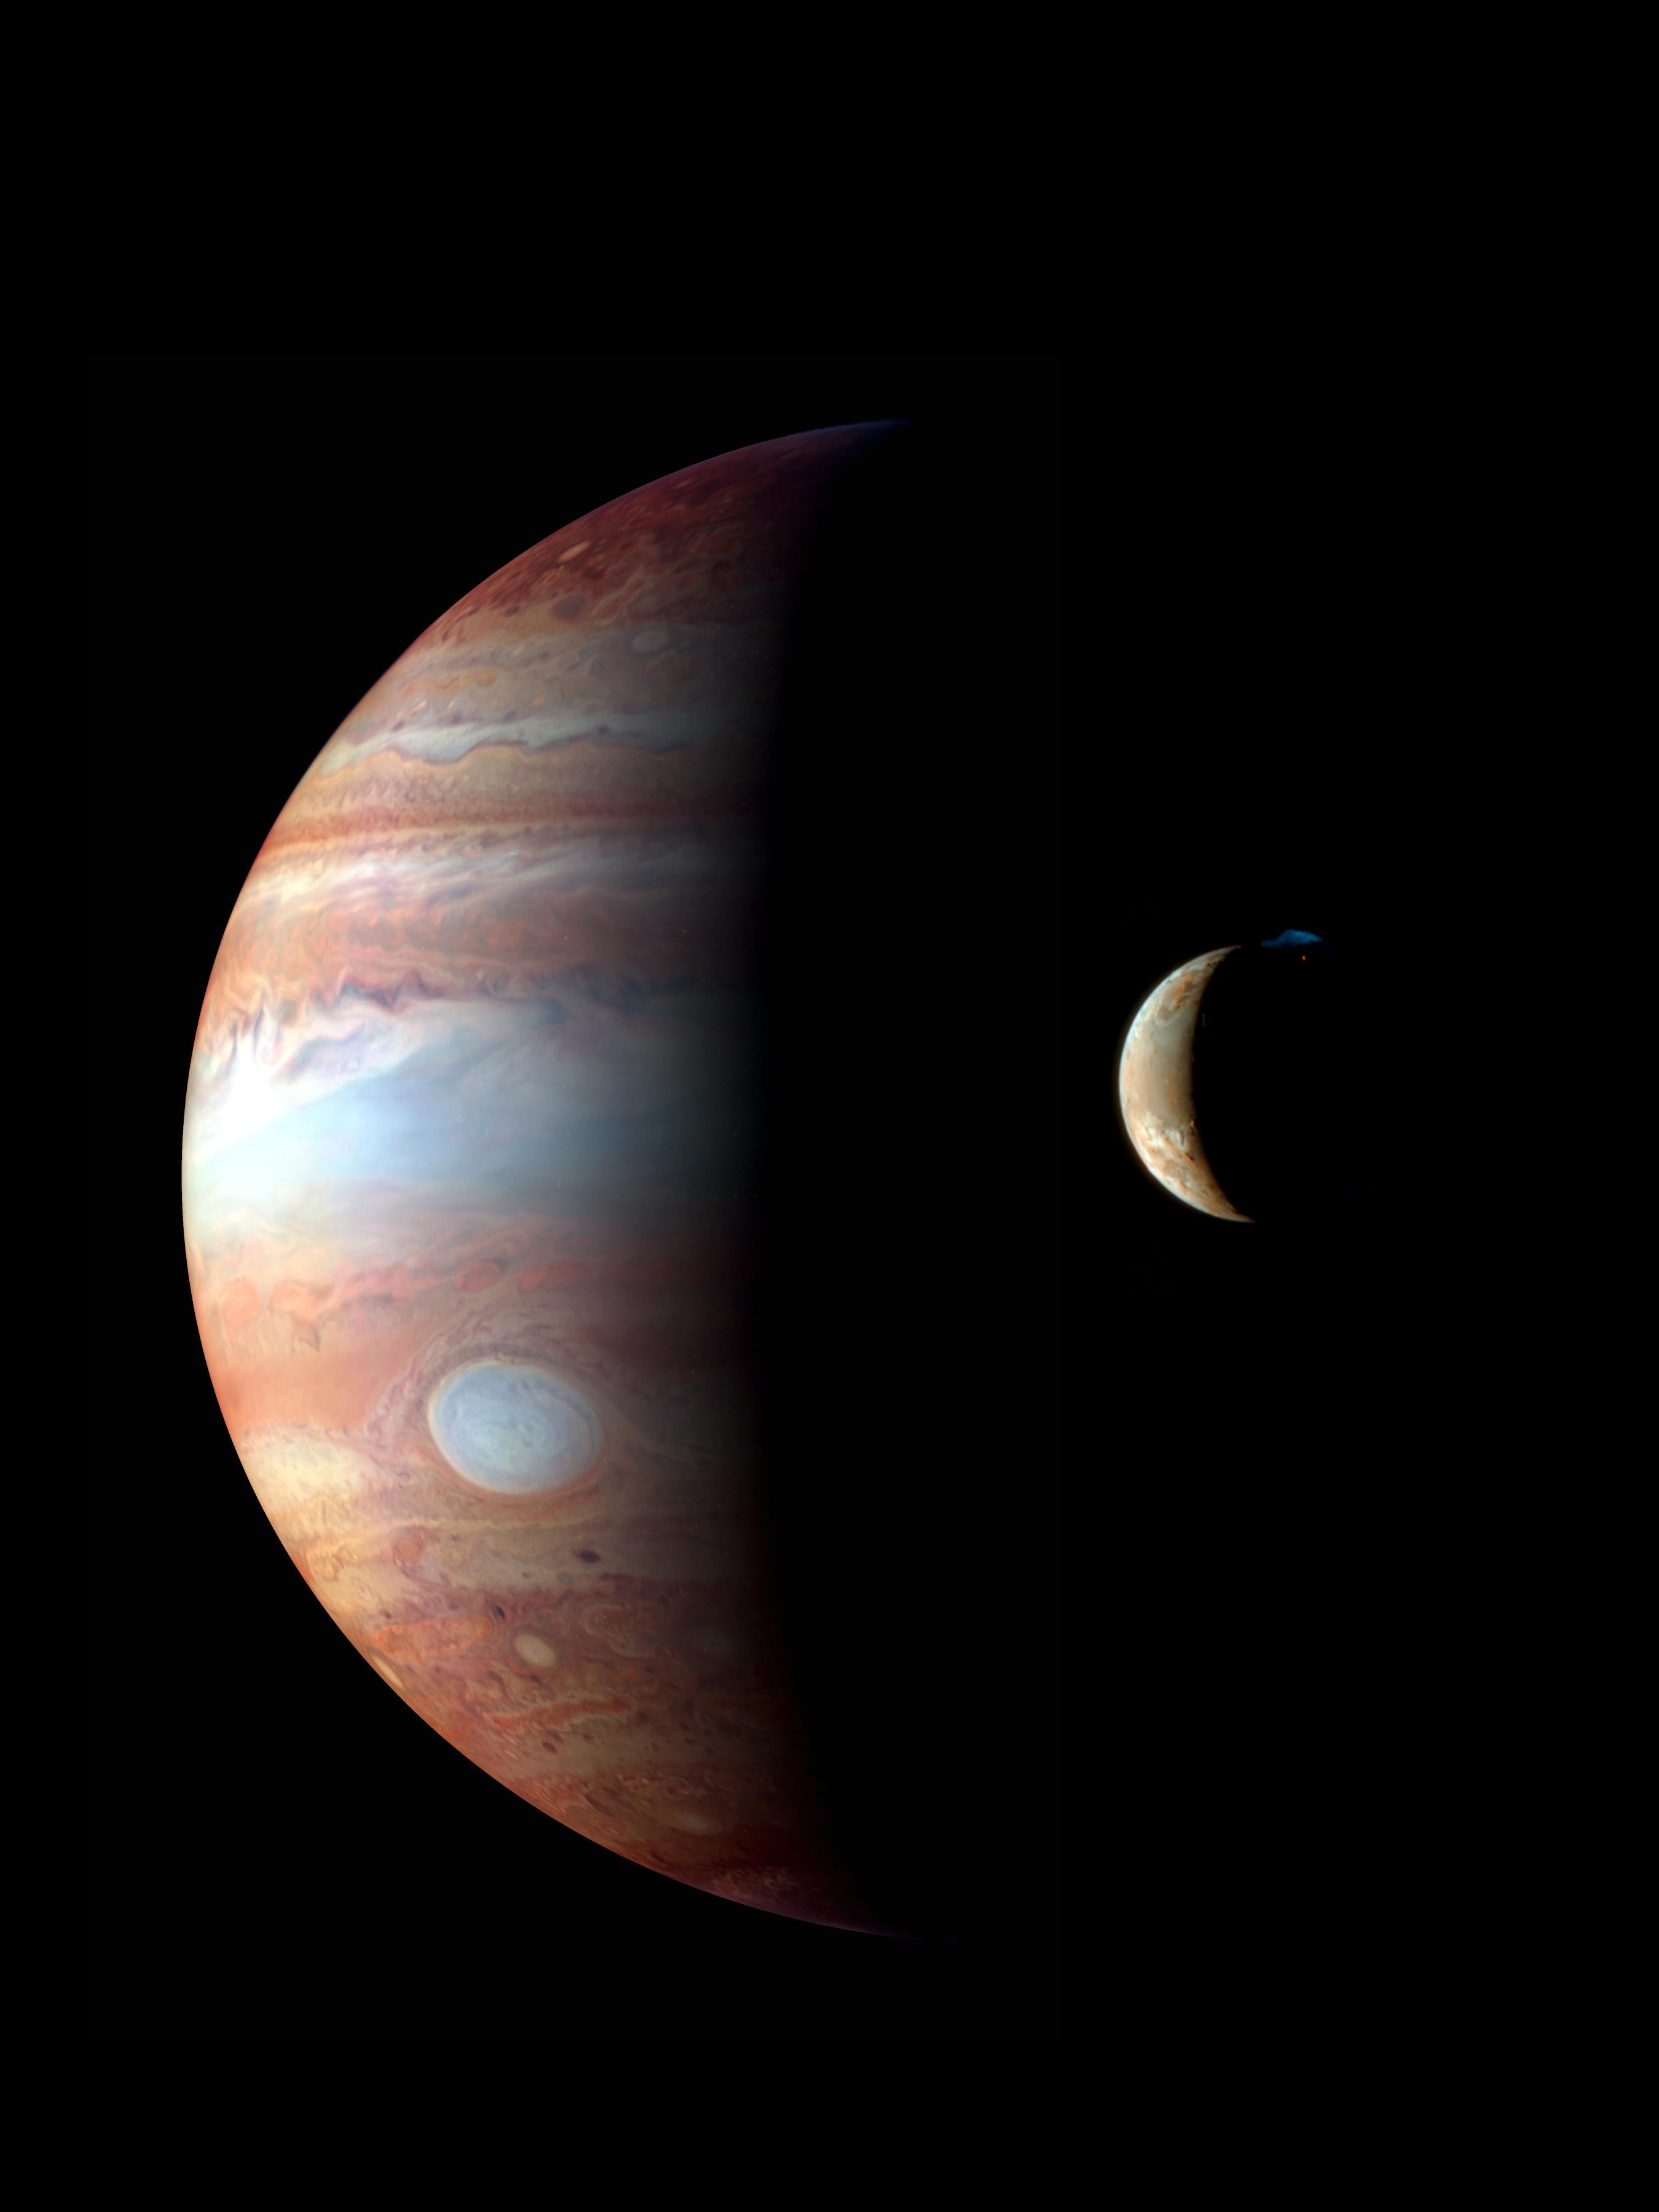 This is a montage of New Horizons images of Jupiter and its volcanic moon Io, taken during the spacecraft's Jupiter flyby in early 2007.